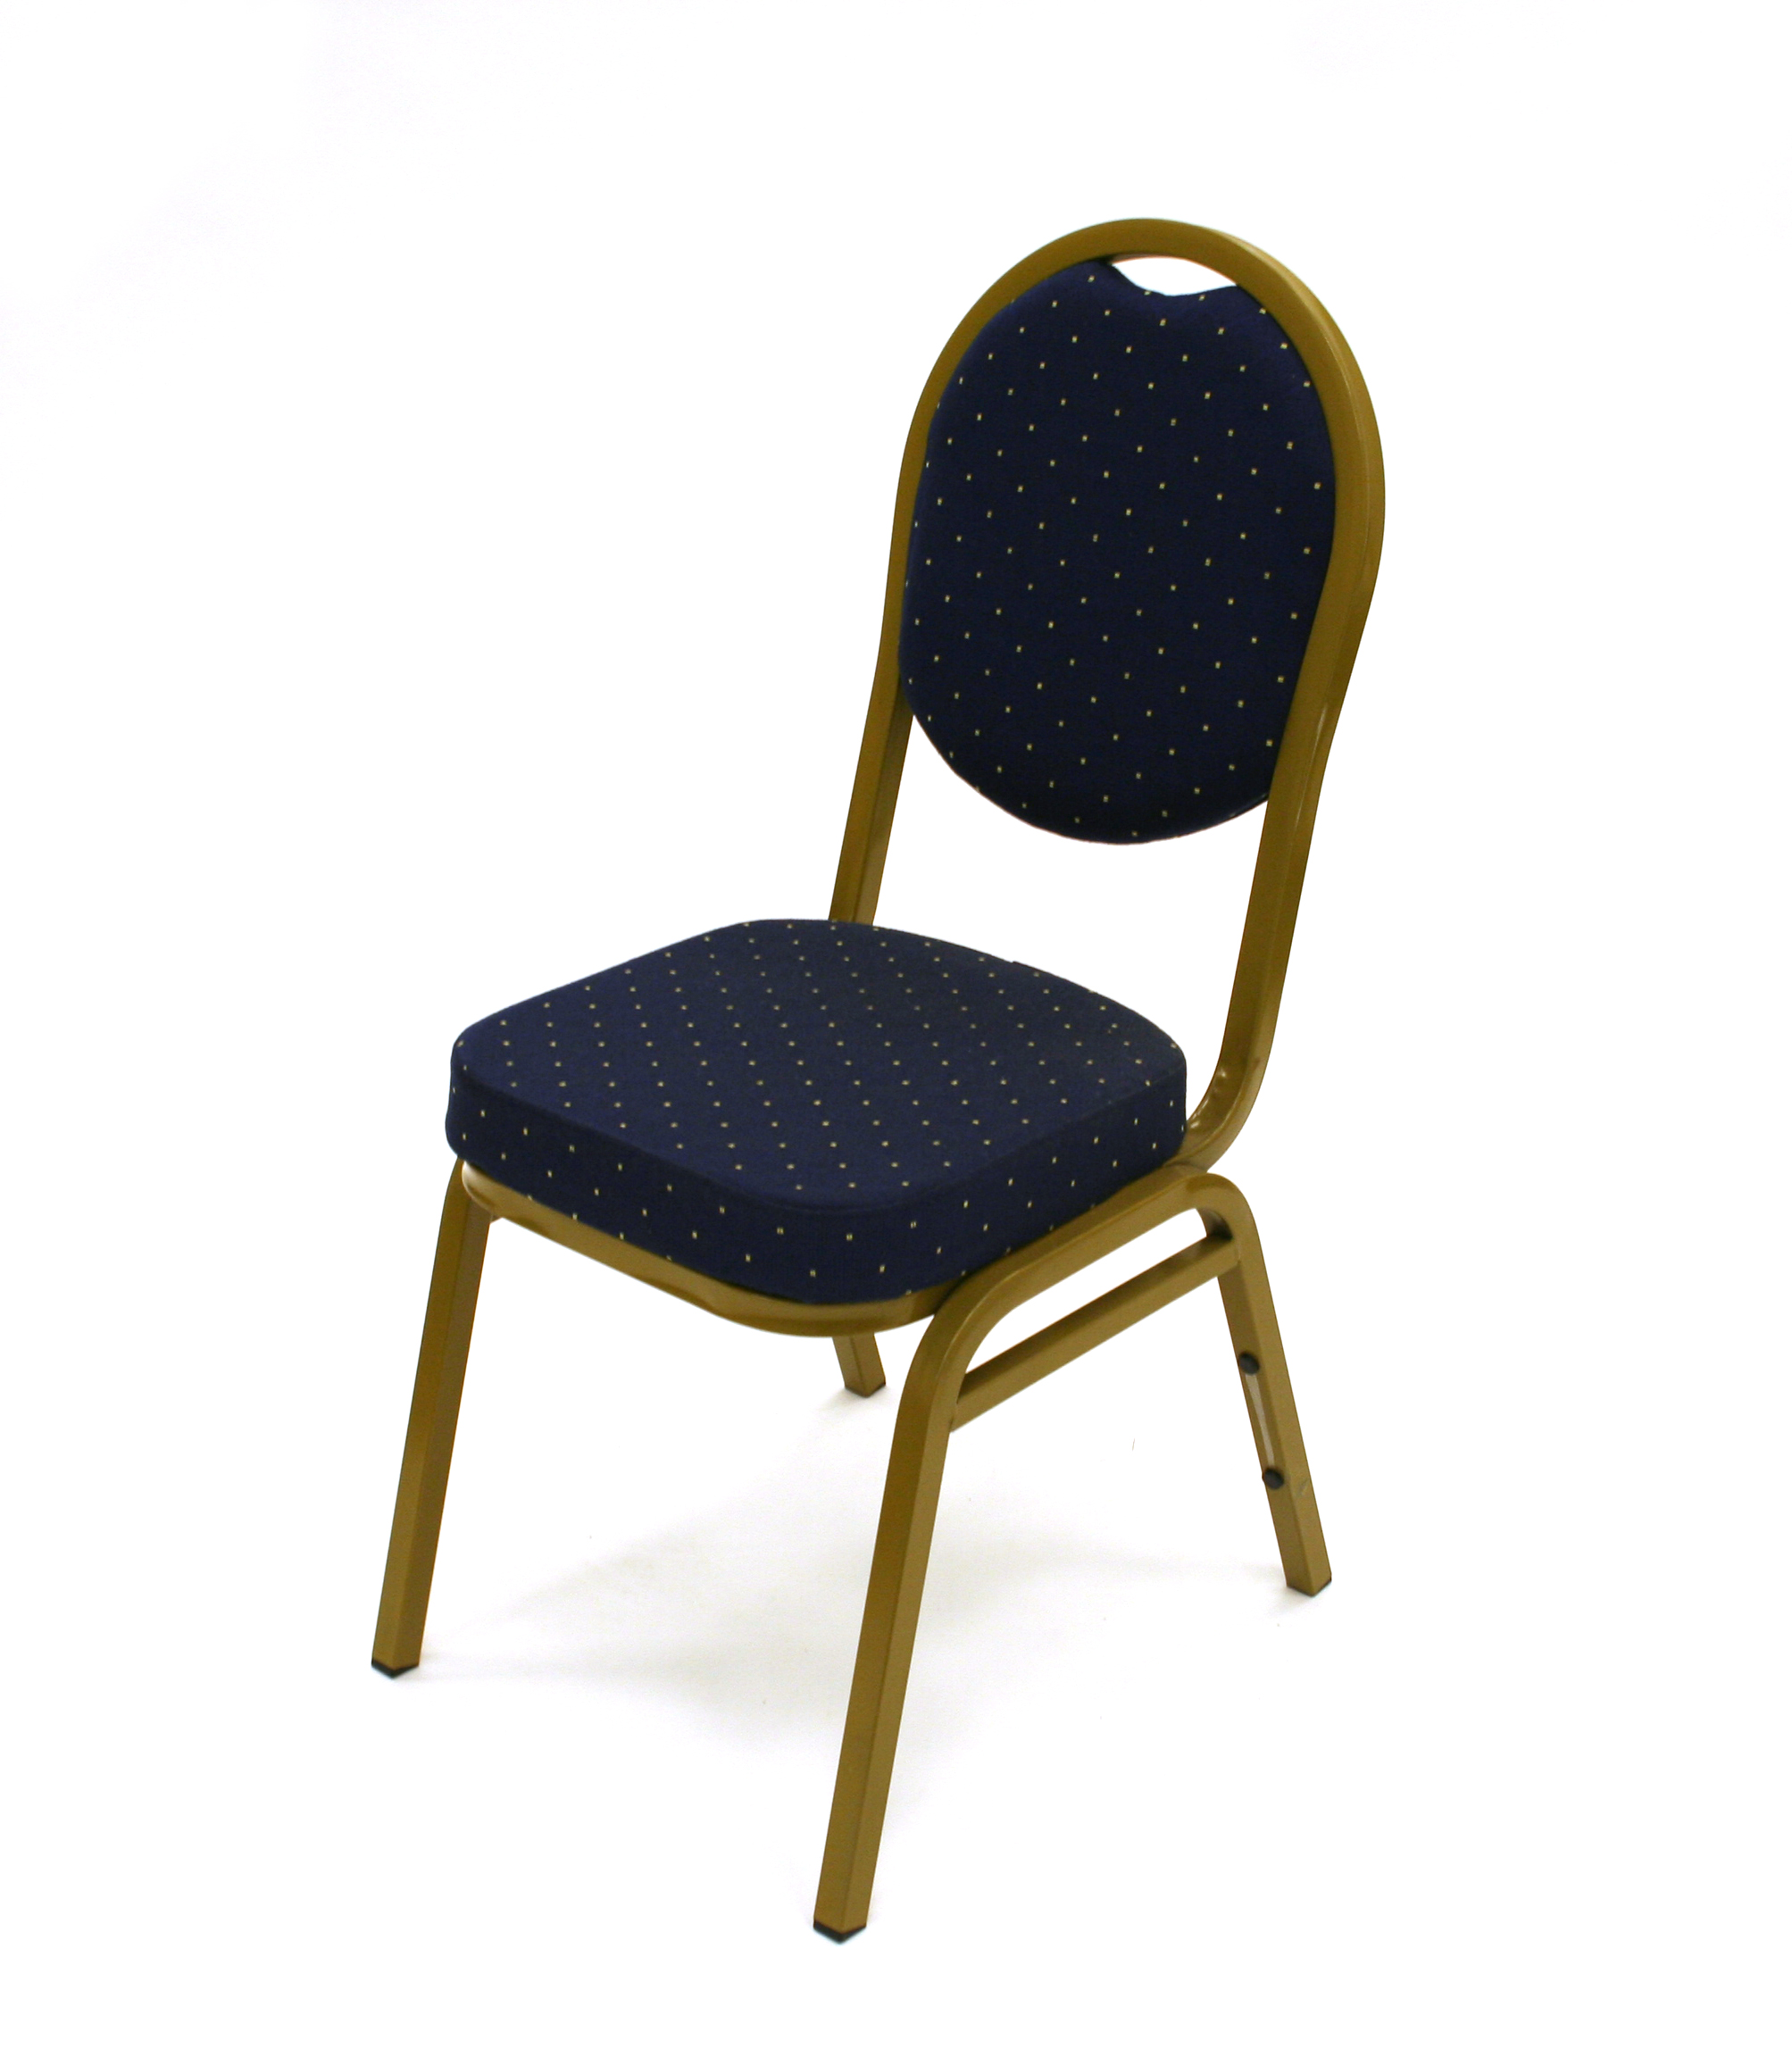 Blue & Gold Banqueting Chair Hire - Weddings, Events - BE Event Hire